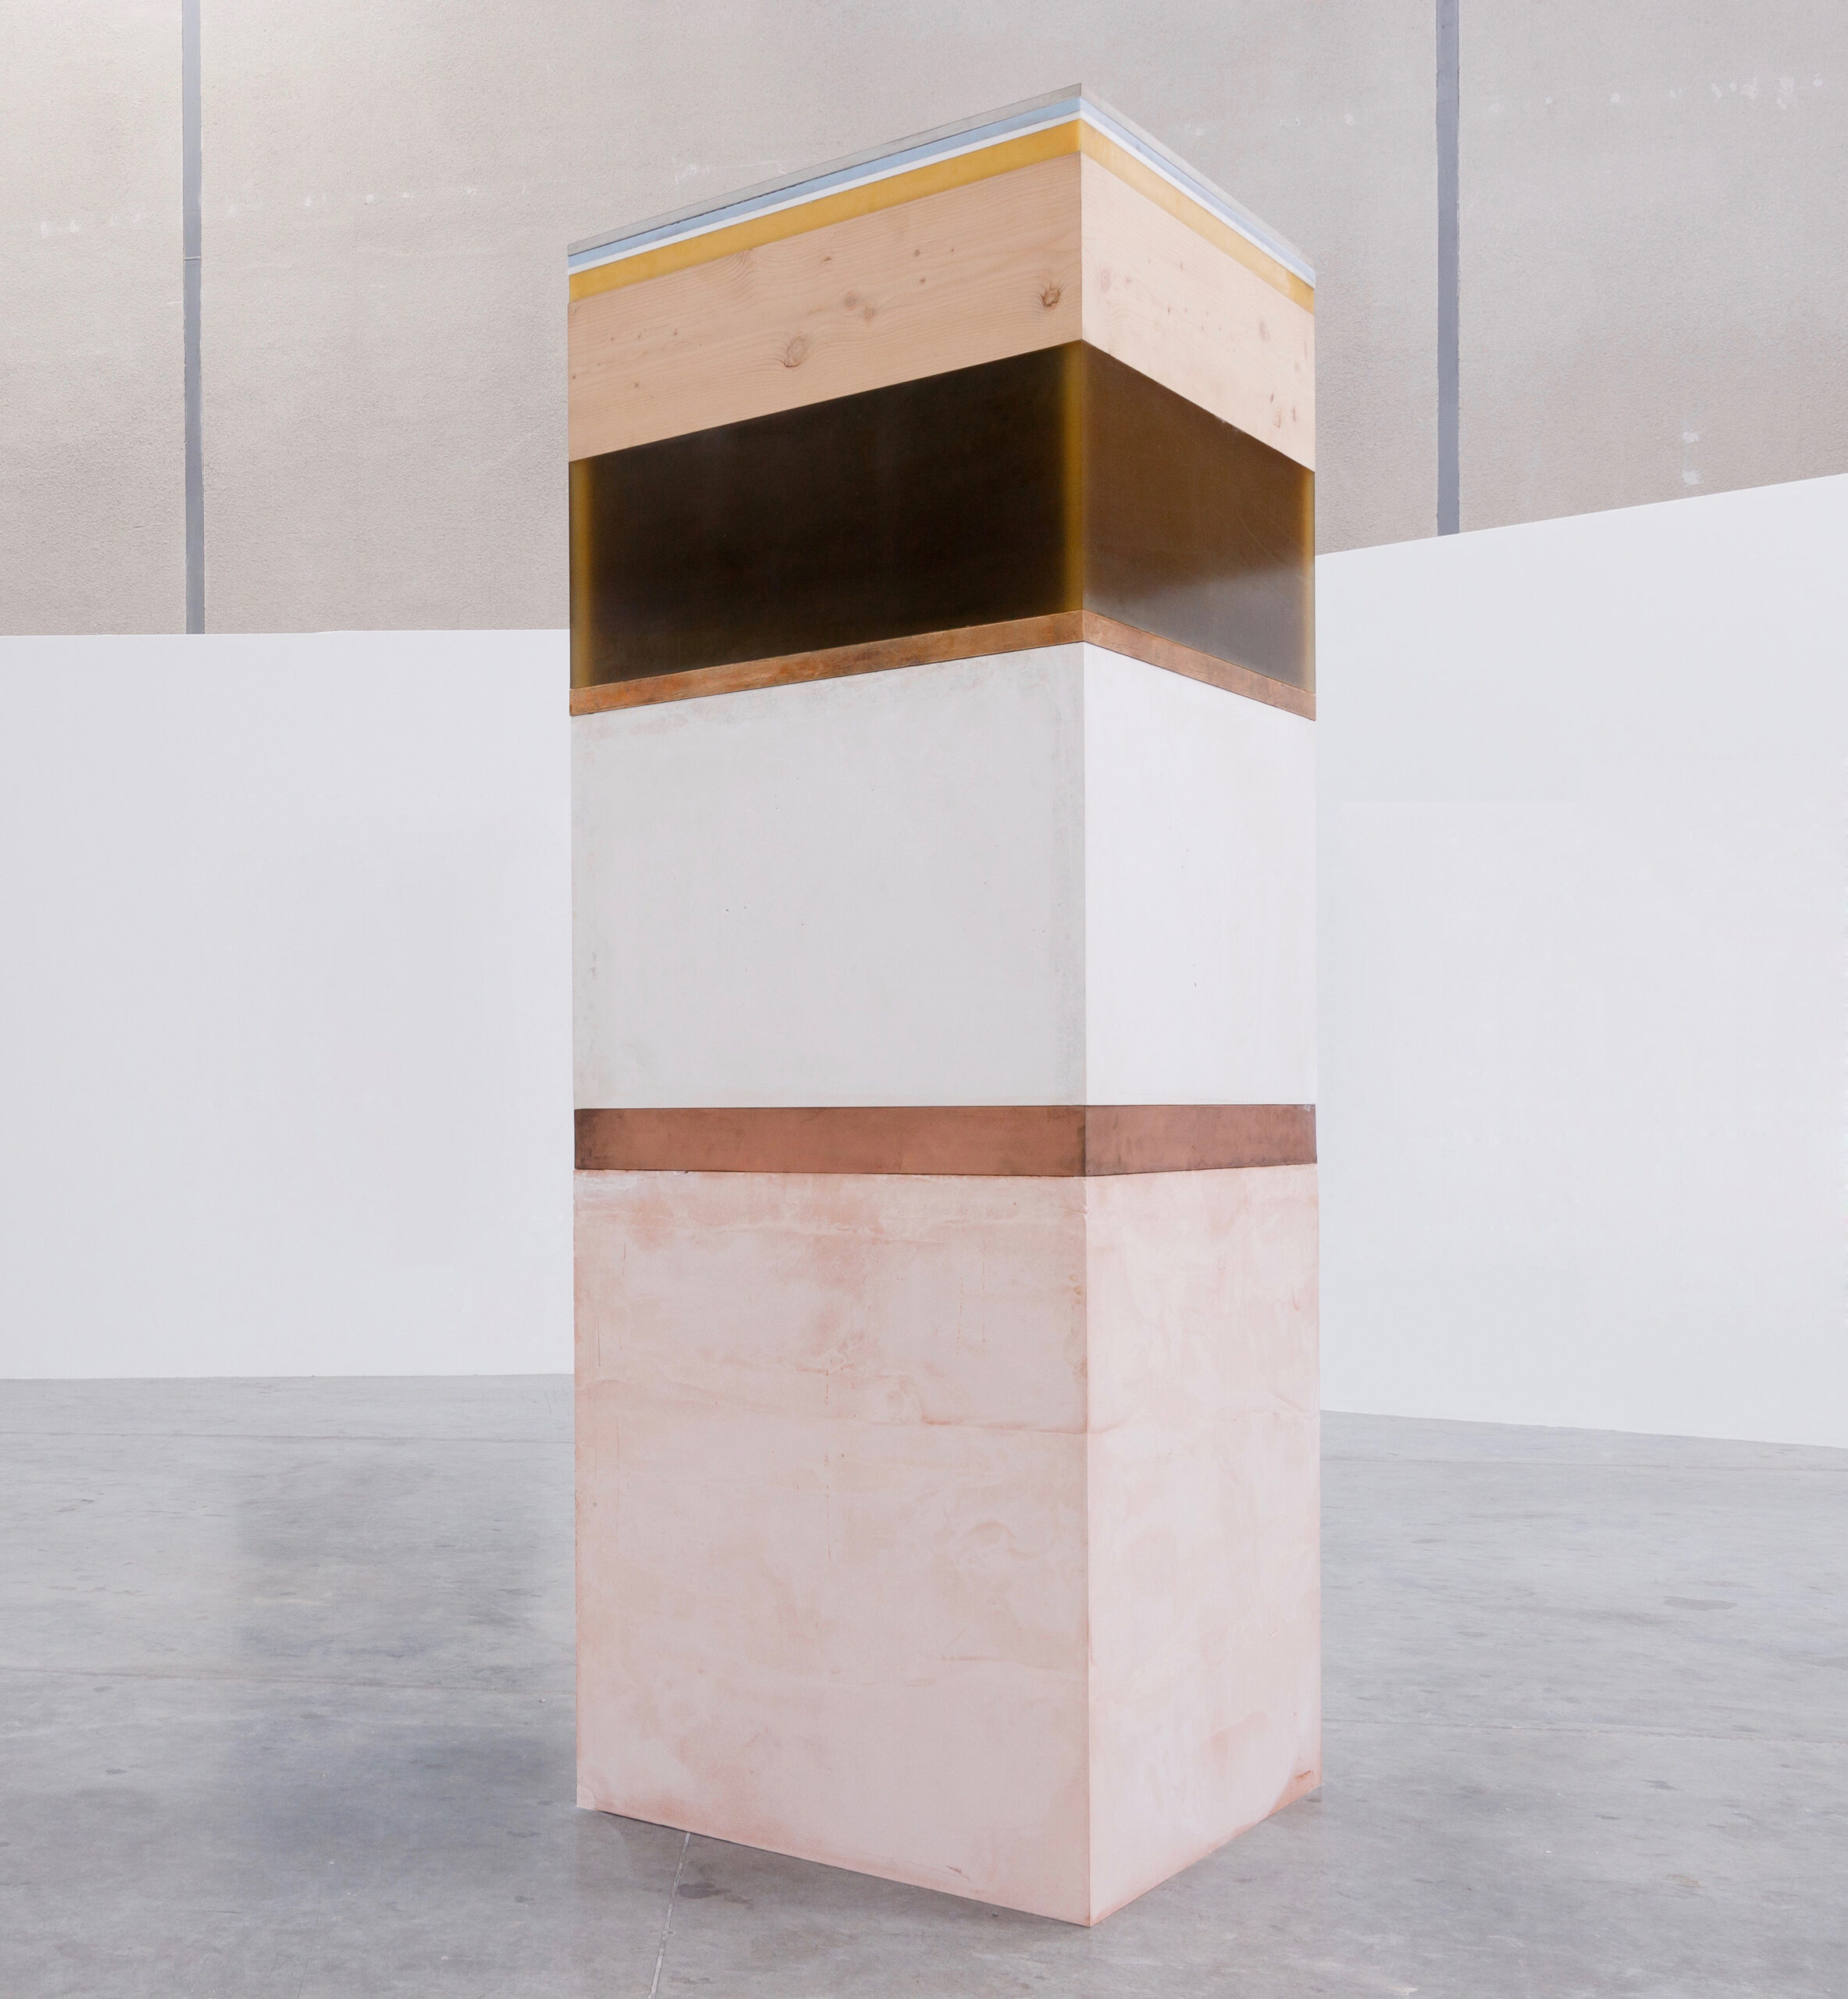 Shaikha Al Mazrou,Scales, 2017, Chamotte clay, Copper, Plaster, Bronze, Resin, Cedar,Wood, Beeswax, Concrete, Silicon and Marble,300 x 100 x 100 cm, Courtesy Lawrie Shabibi and the artist